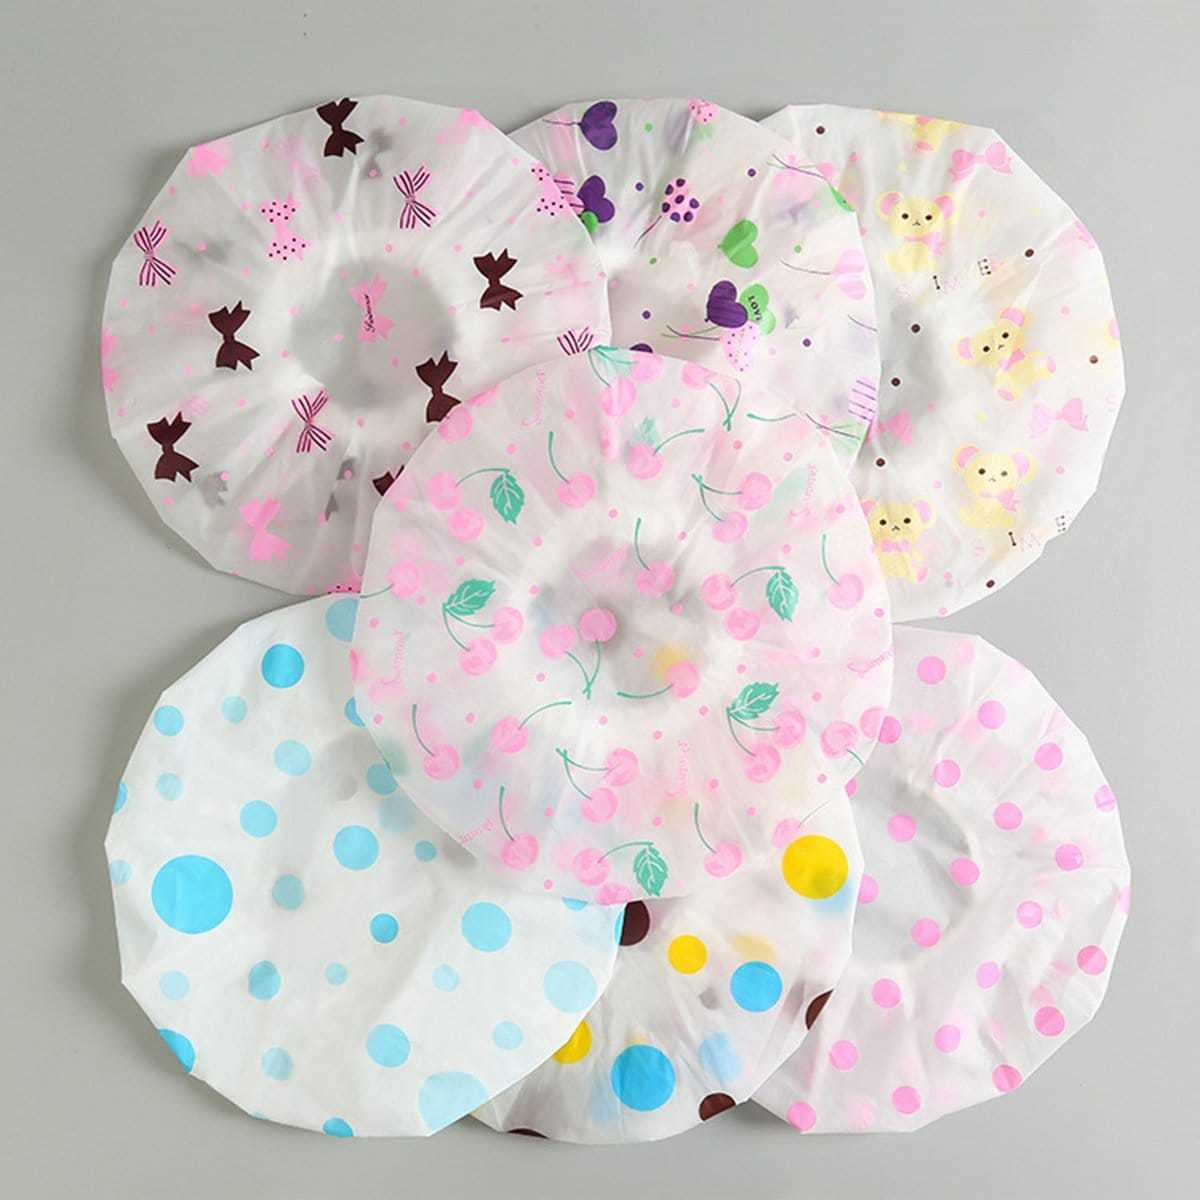 Random Color Dry Shower Cap 2pcs in Multicolor by ROMWE on GOOFASH